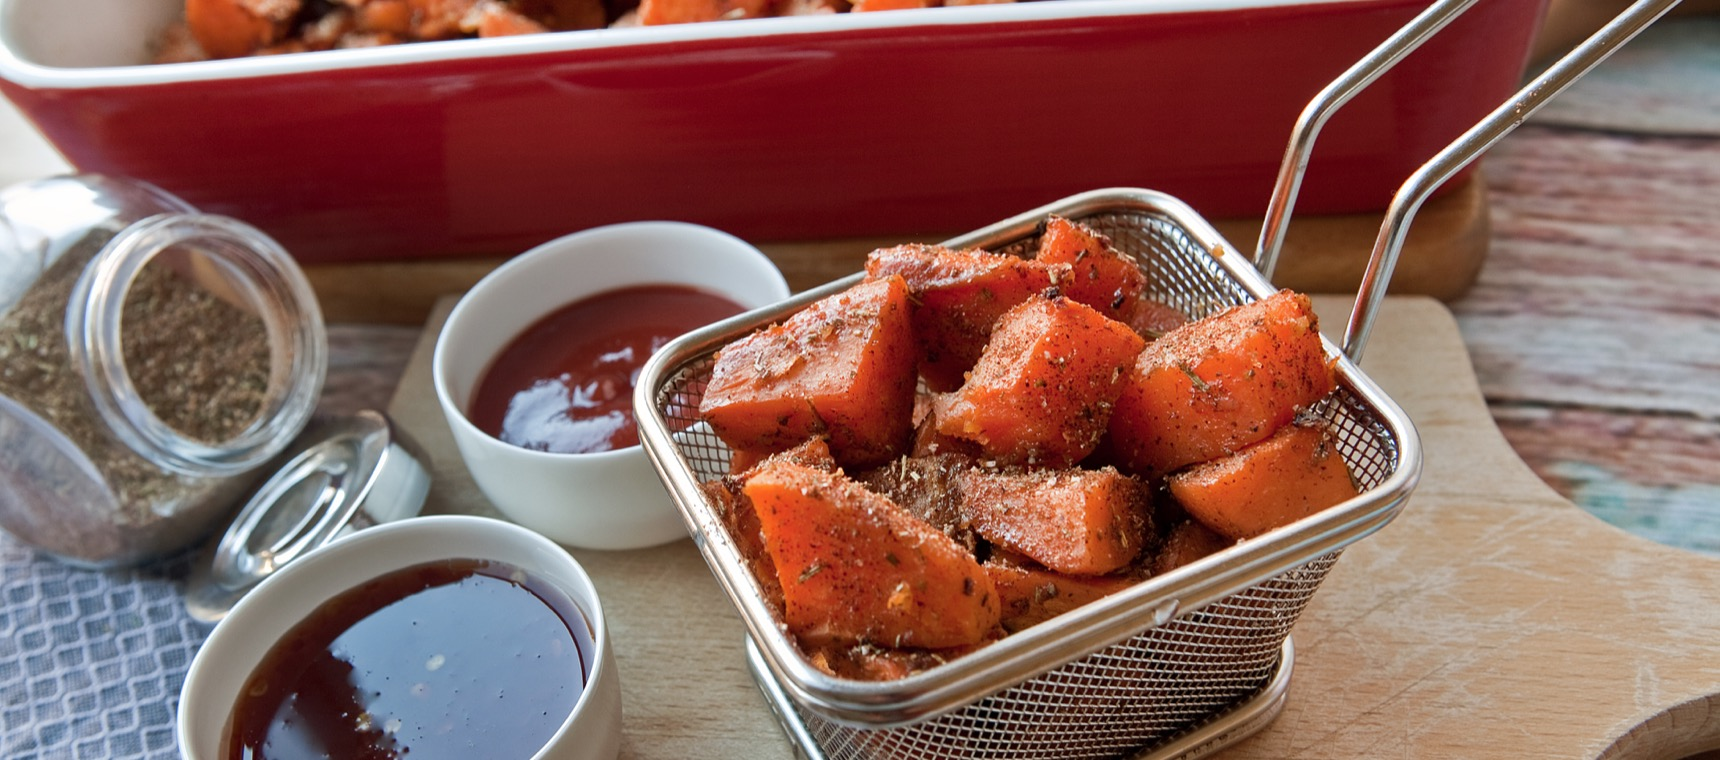 Seasoned Sweet Potato Bites